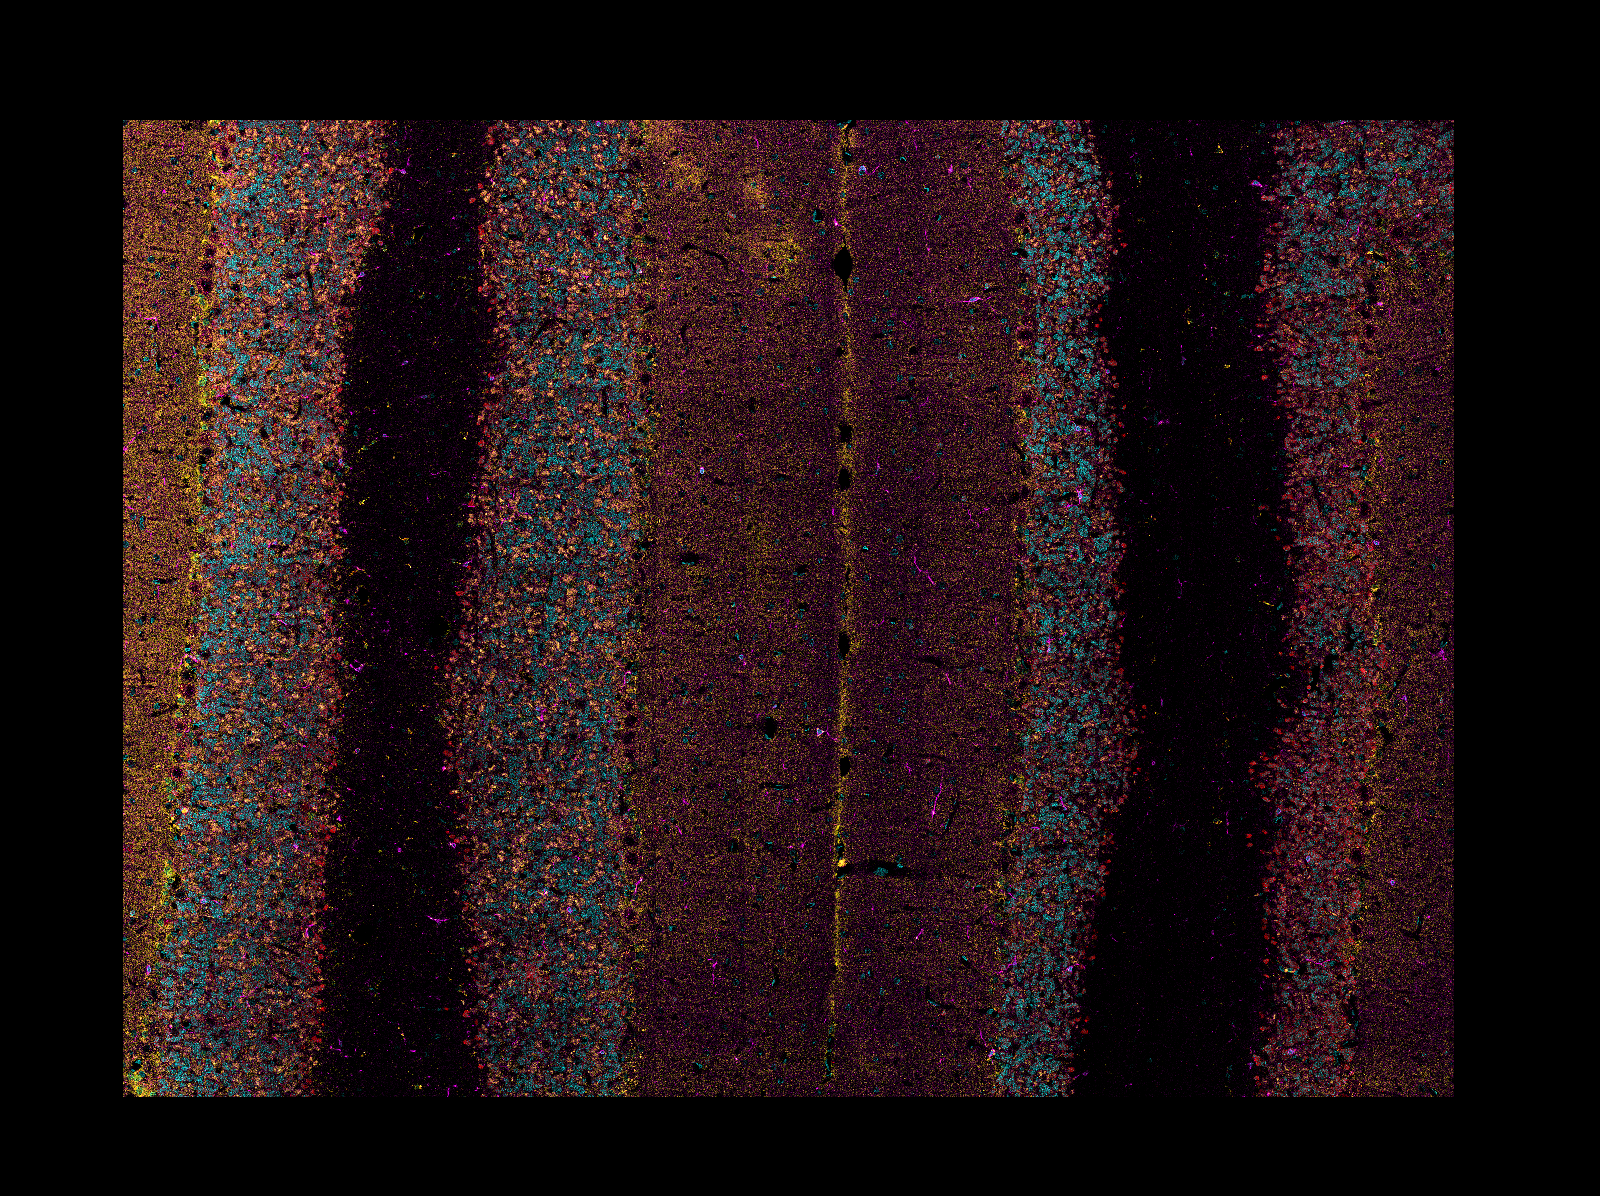 screenshot of a reconstructed / restitched mosaic tile LIF